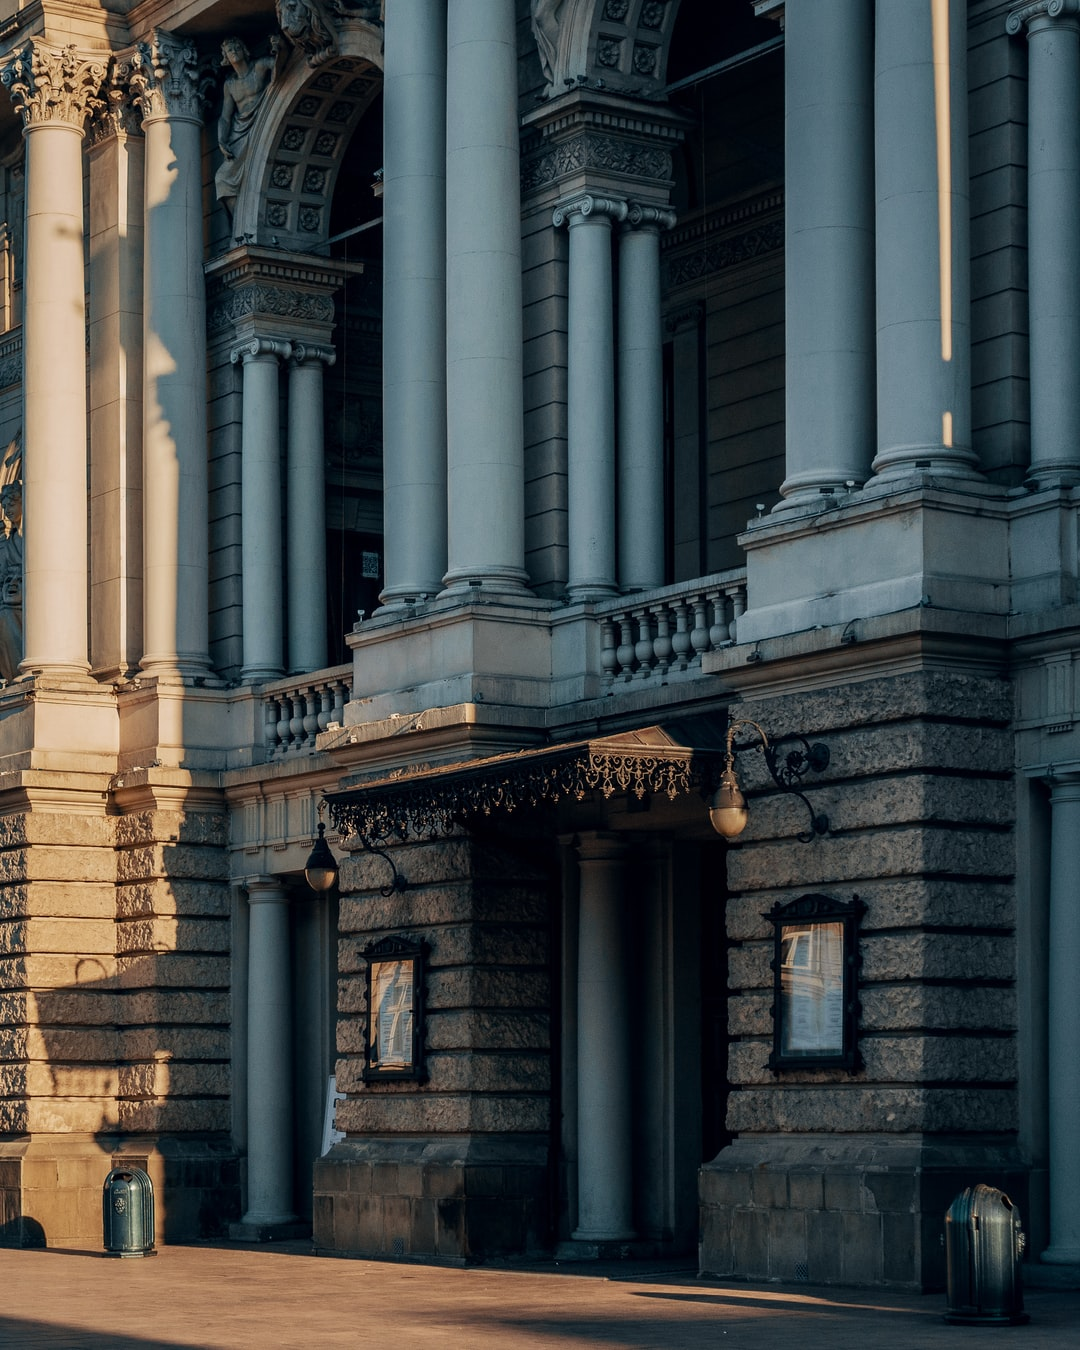 06:00 AM, Early Morning. The Lviv Opera opened on October 4, 1900. The cultural elite—painters, writers, and composers, as well as delegations from various European theatres—attended the opening festivities.